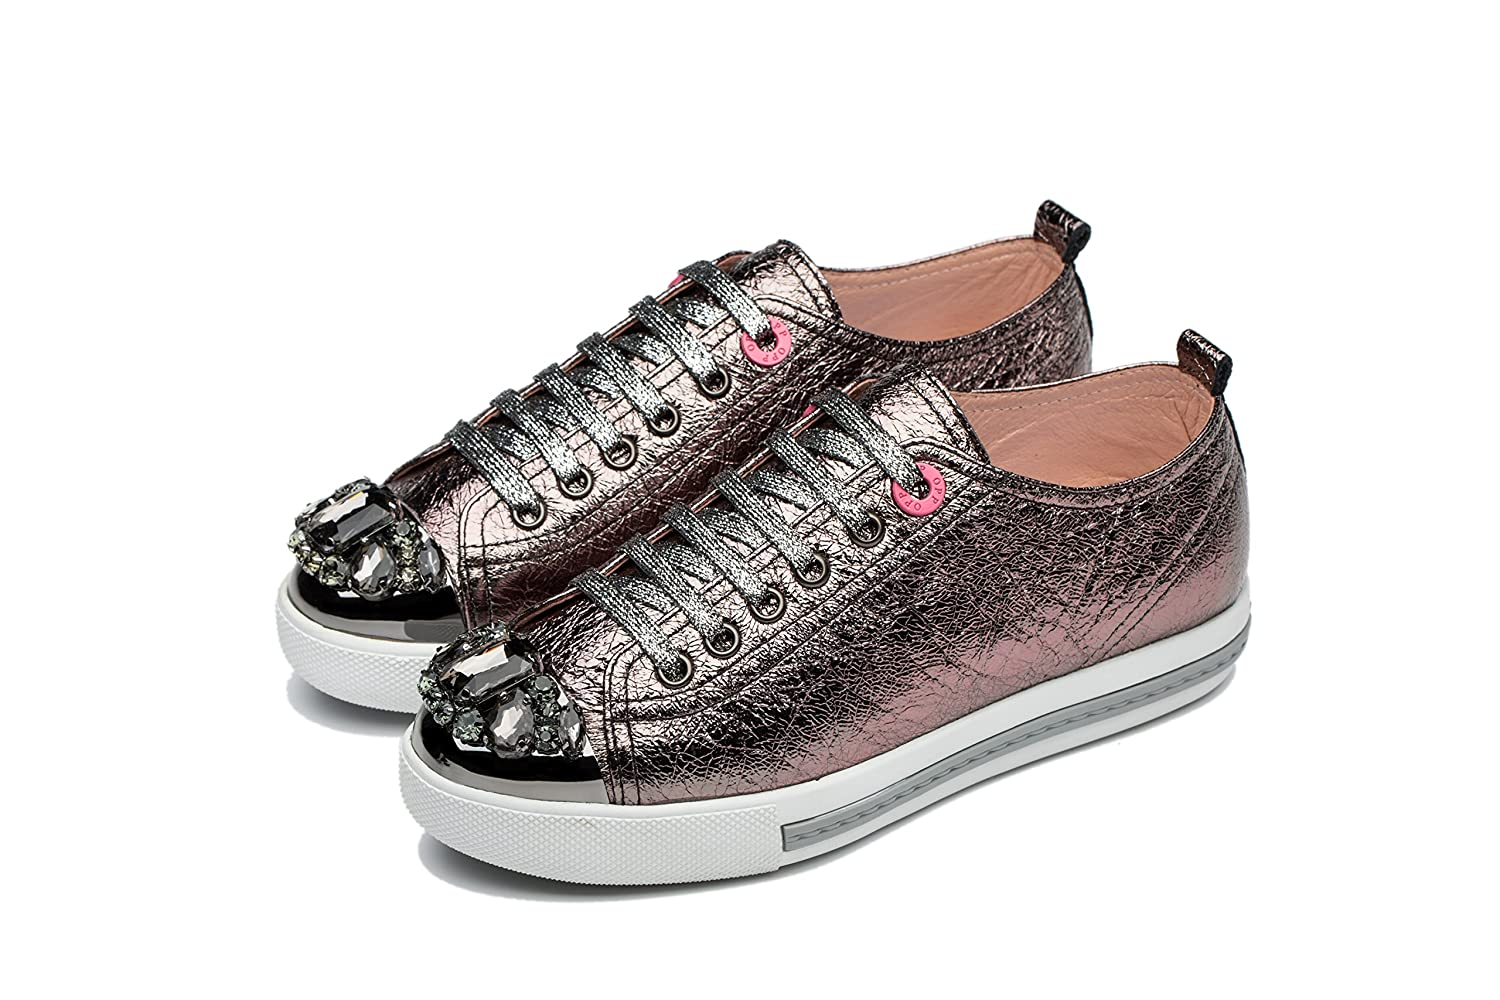 OPP Womens Metallic Leather Lace up Fashion Sneakers